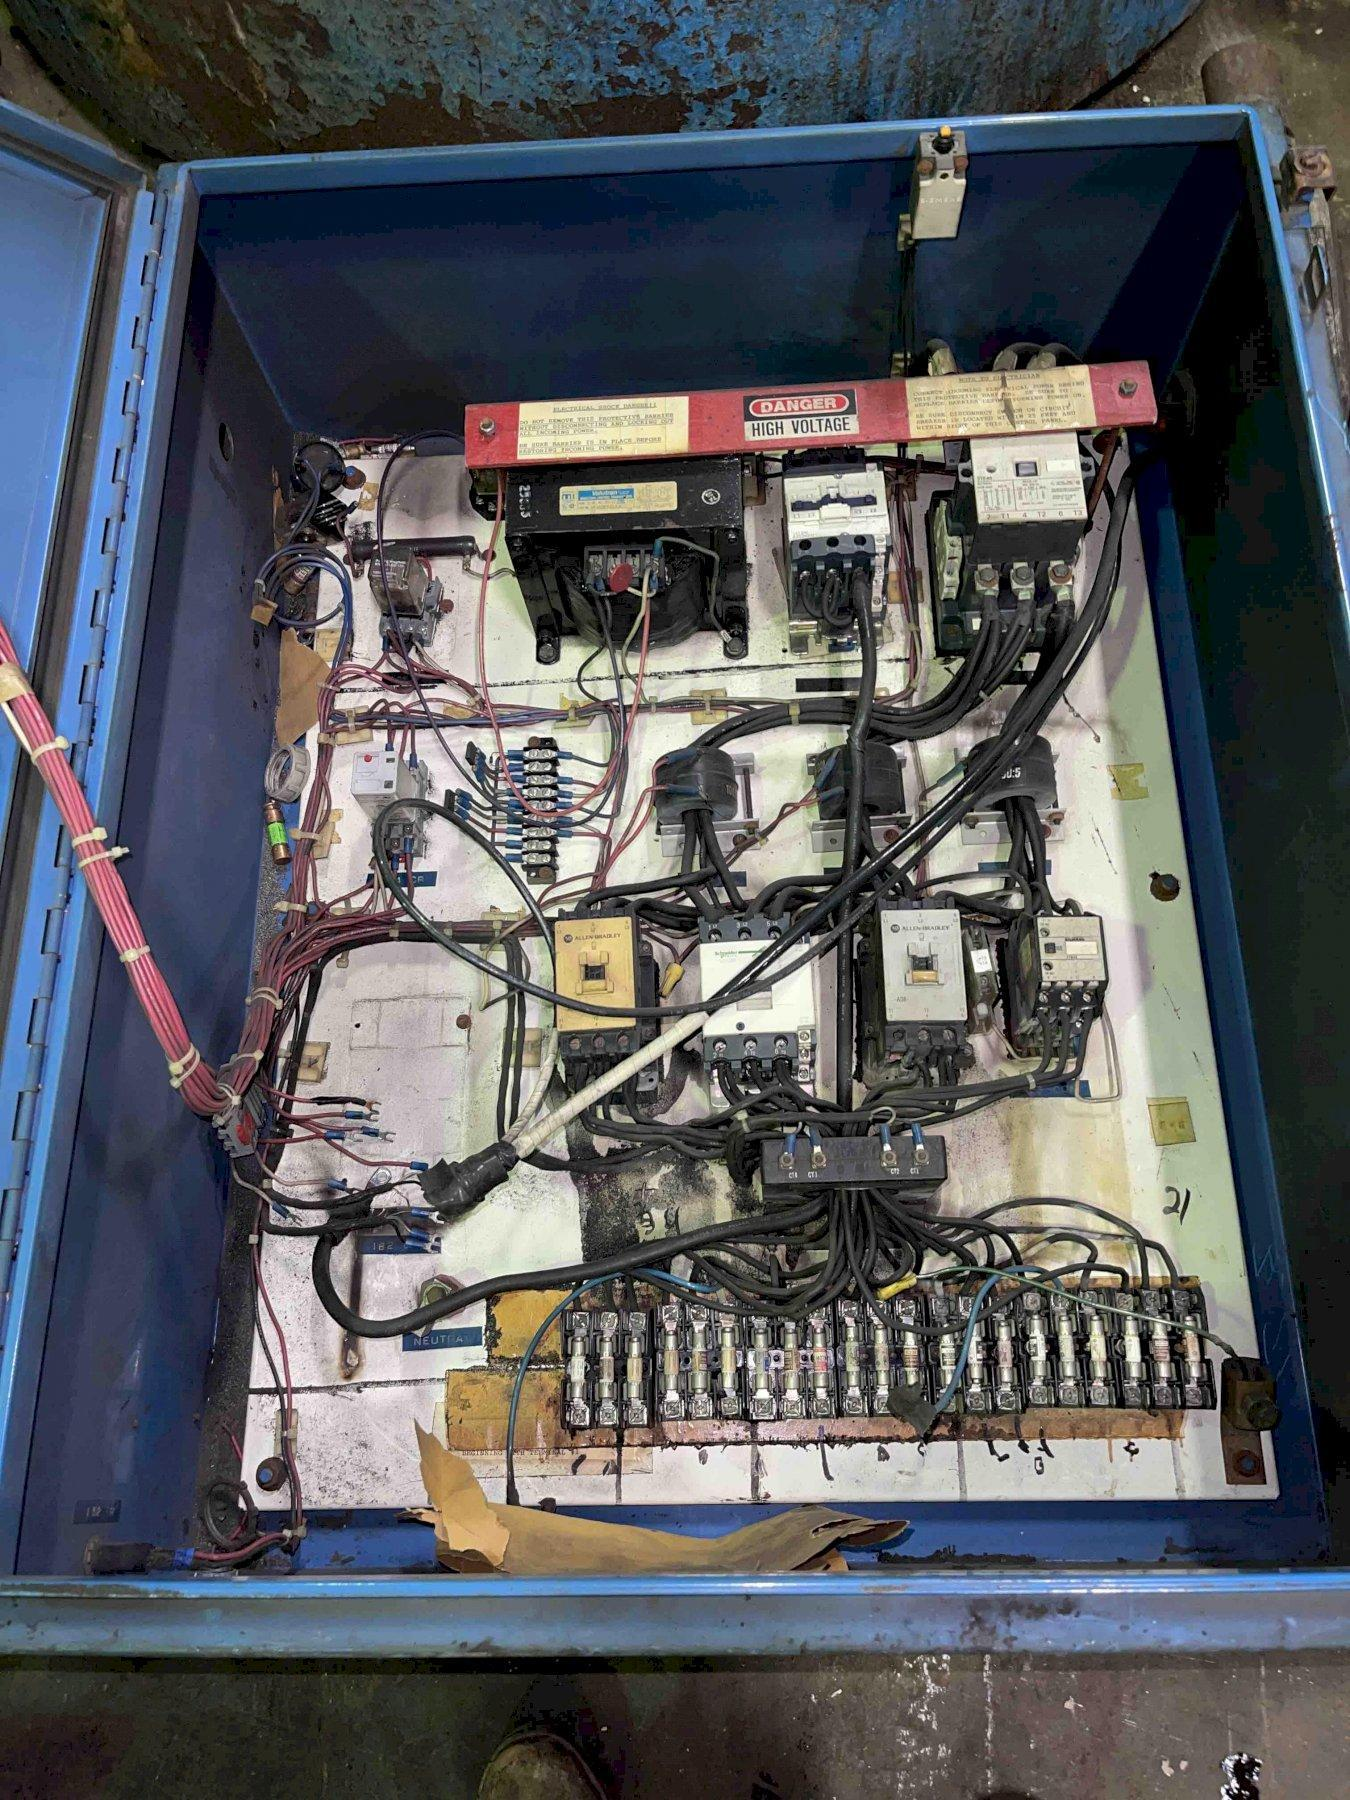 DYNARAD MODEL EC1500  S/N 679 ELECTRIC RESISTANCE MELTING FURNACE WITH CONTROLS offered cleaned, painted and checked out